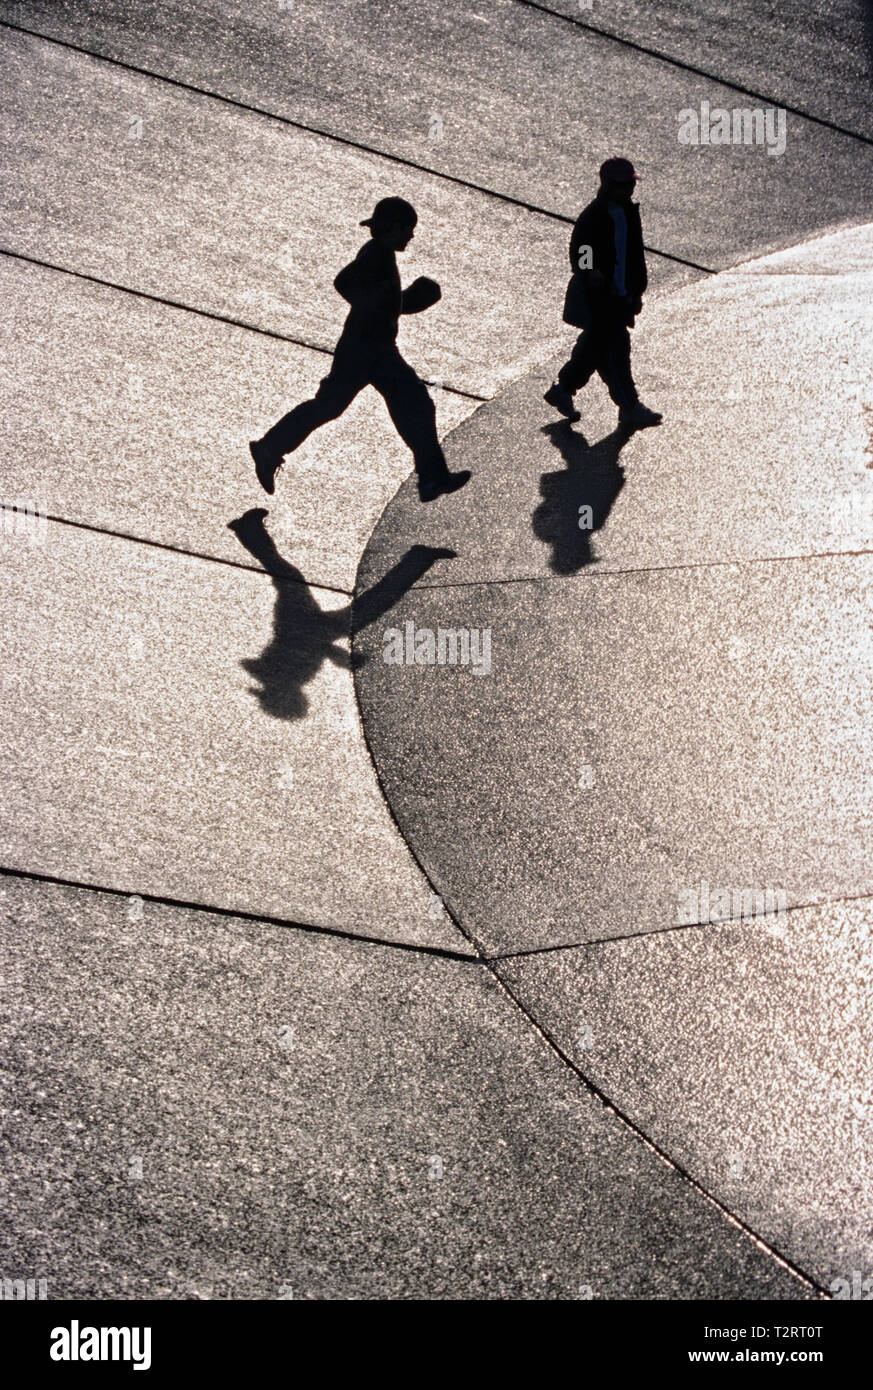 Sillhouette  of two boys running on a concrete fountain downtown Seattle - Stock Image